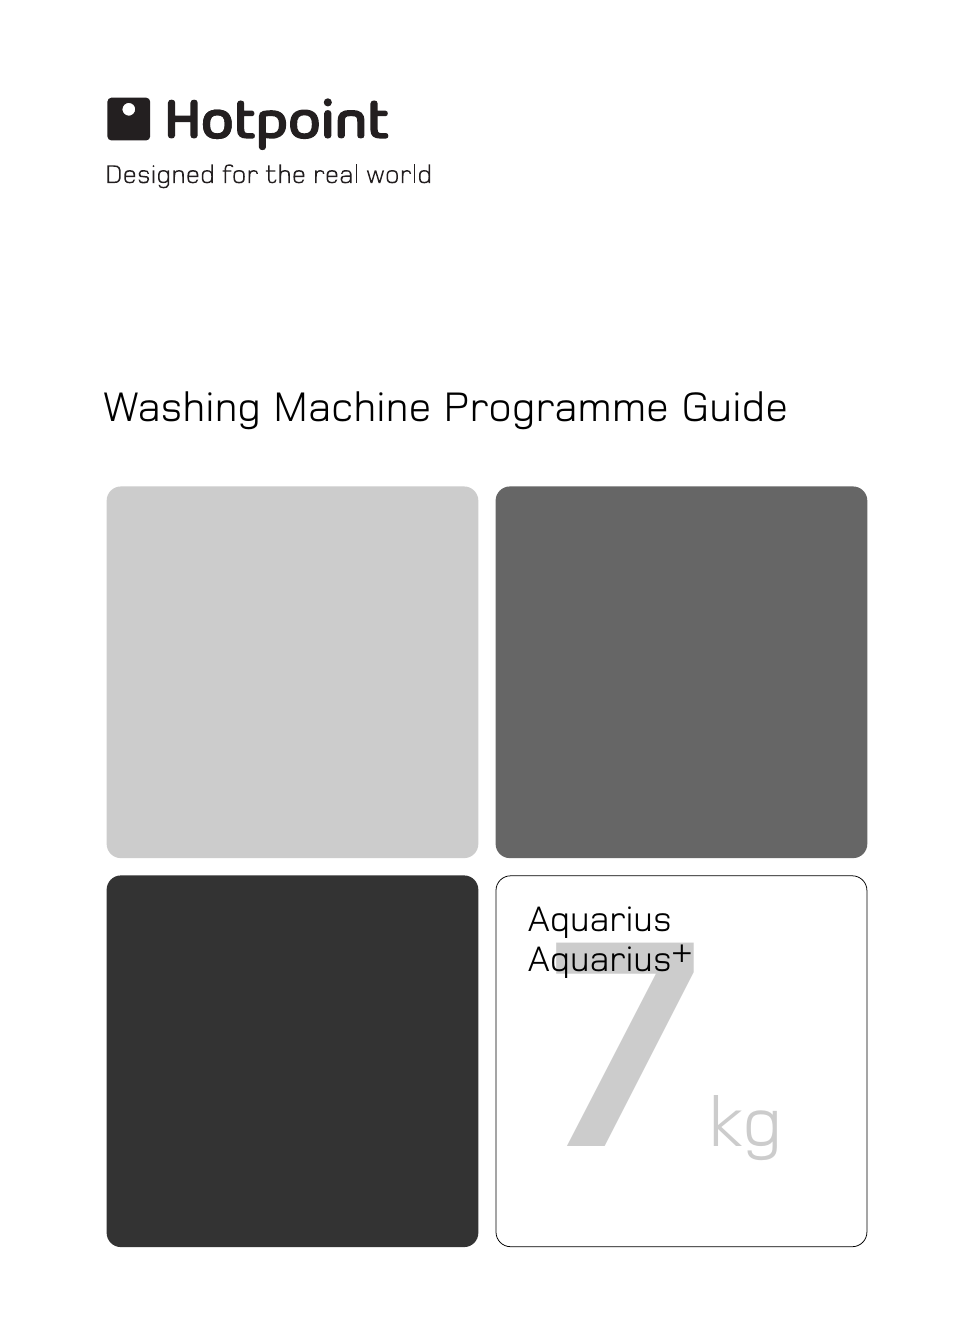 Hotpoint WT540 User Manual | 16 pages | Also for: WT760, WT745, AQUQRIUS  PLUS WT740